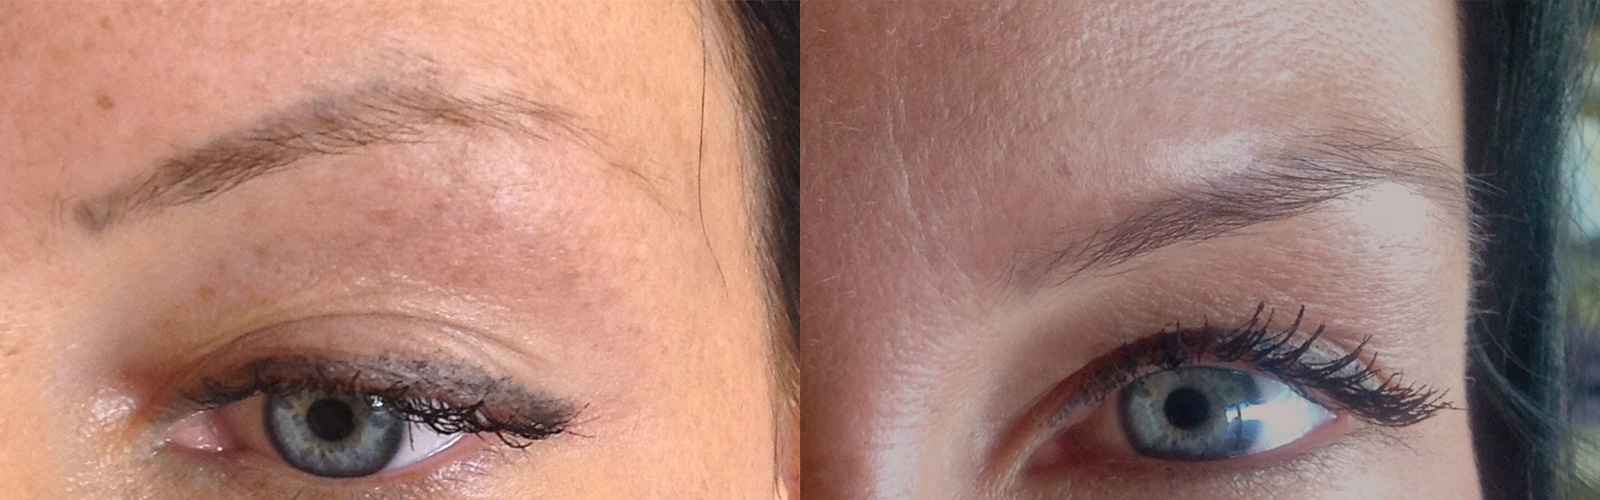 Stem-Cell-Brows-Before-After-1